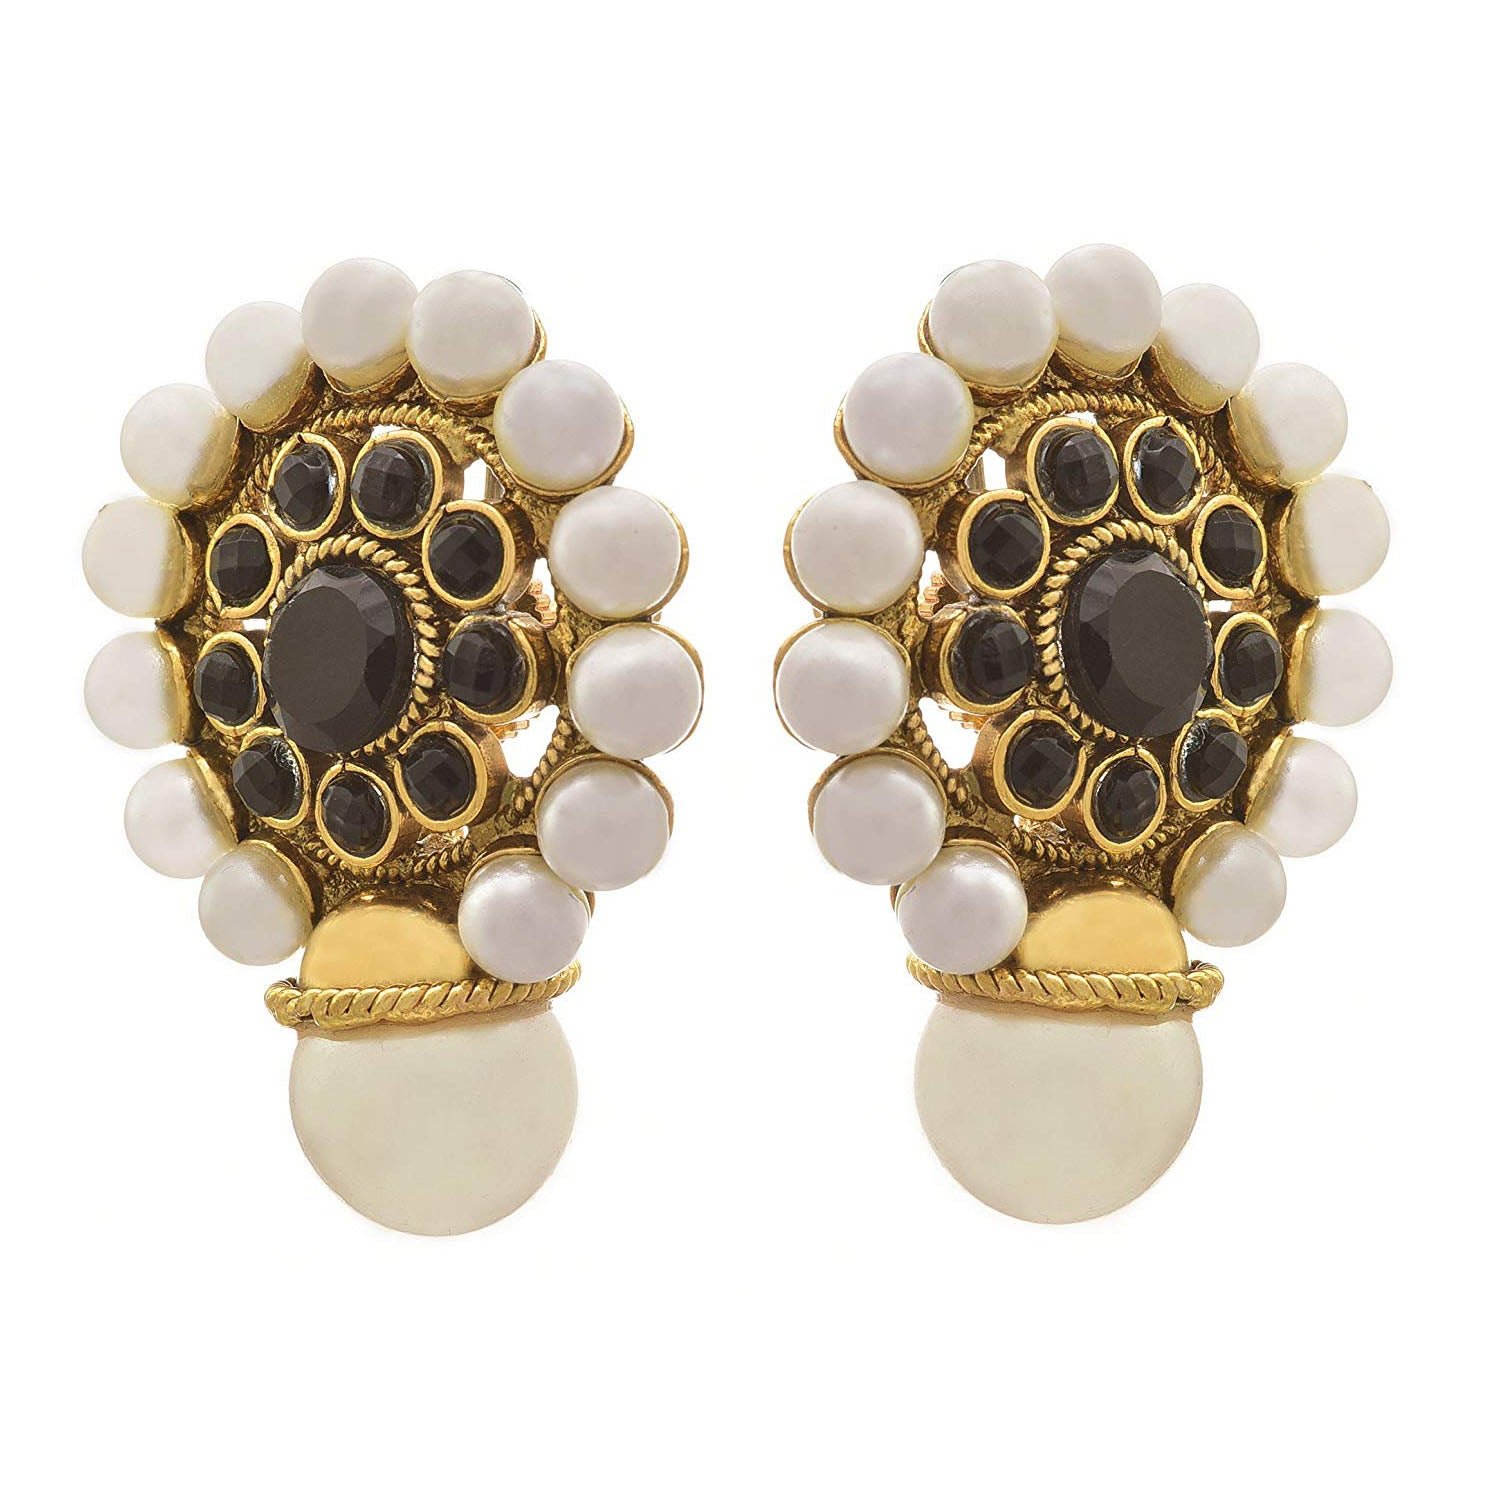 JFL- Traditional Ethnic One Gram Gold Plated Black Stone & Pearls Designer Earrings for Women and Girls.